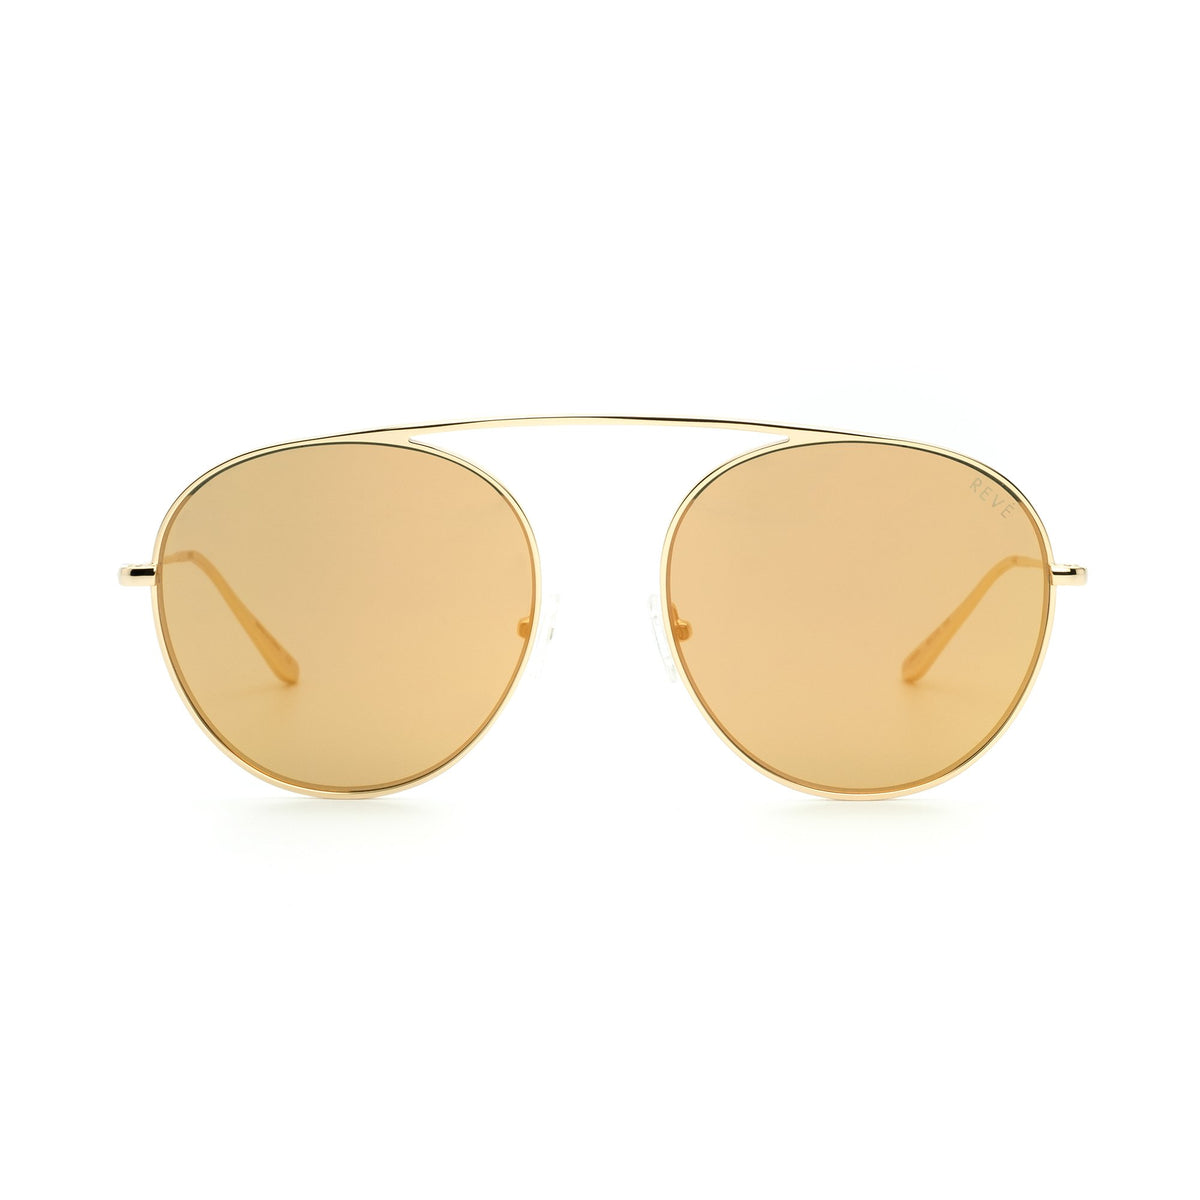 4AM | Gold | Aviator Sunglasses - Asian Fit